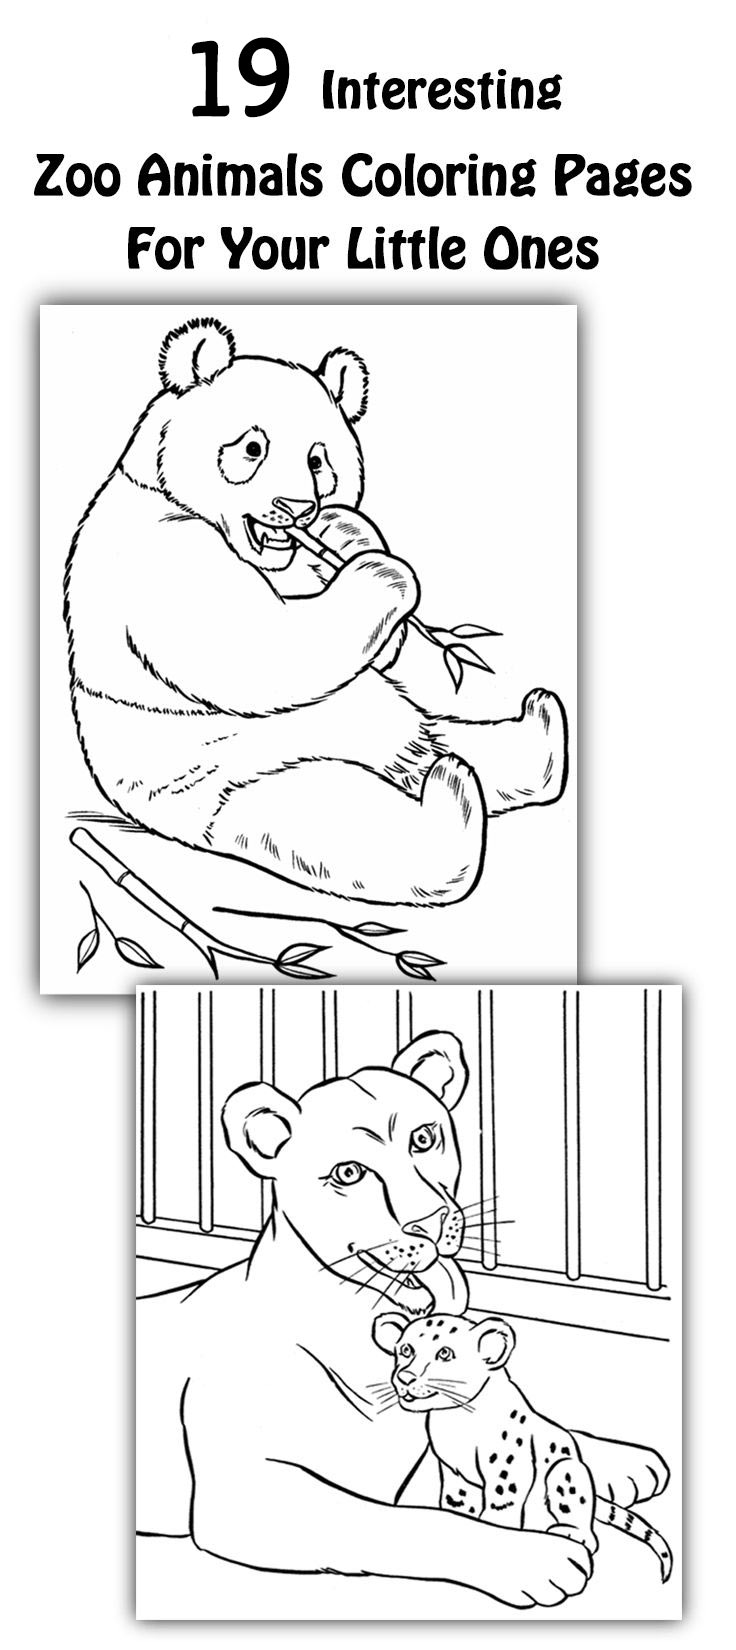 Free coloring pictures zoo animals - Free Coloring Pictures Zoo Animals 38